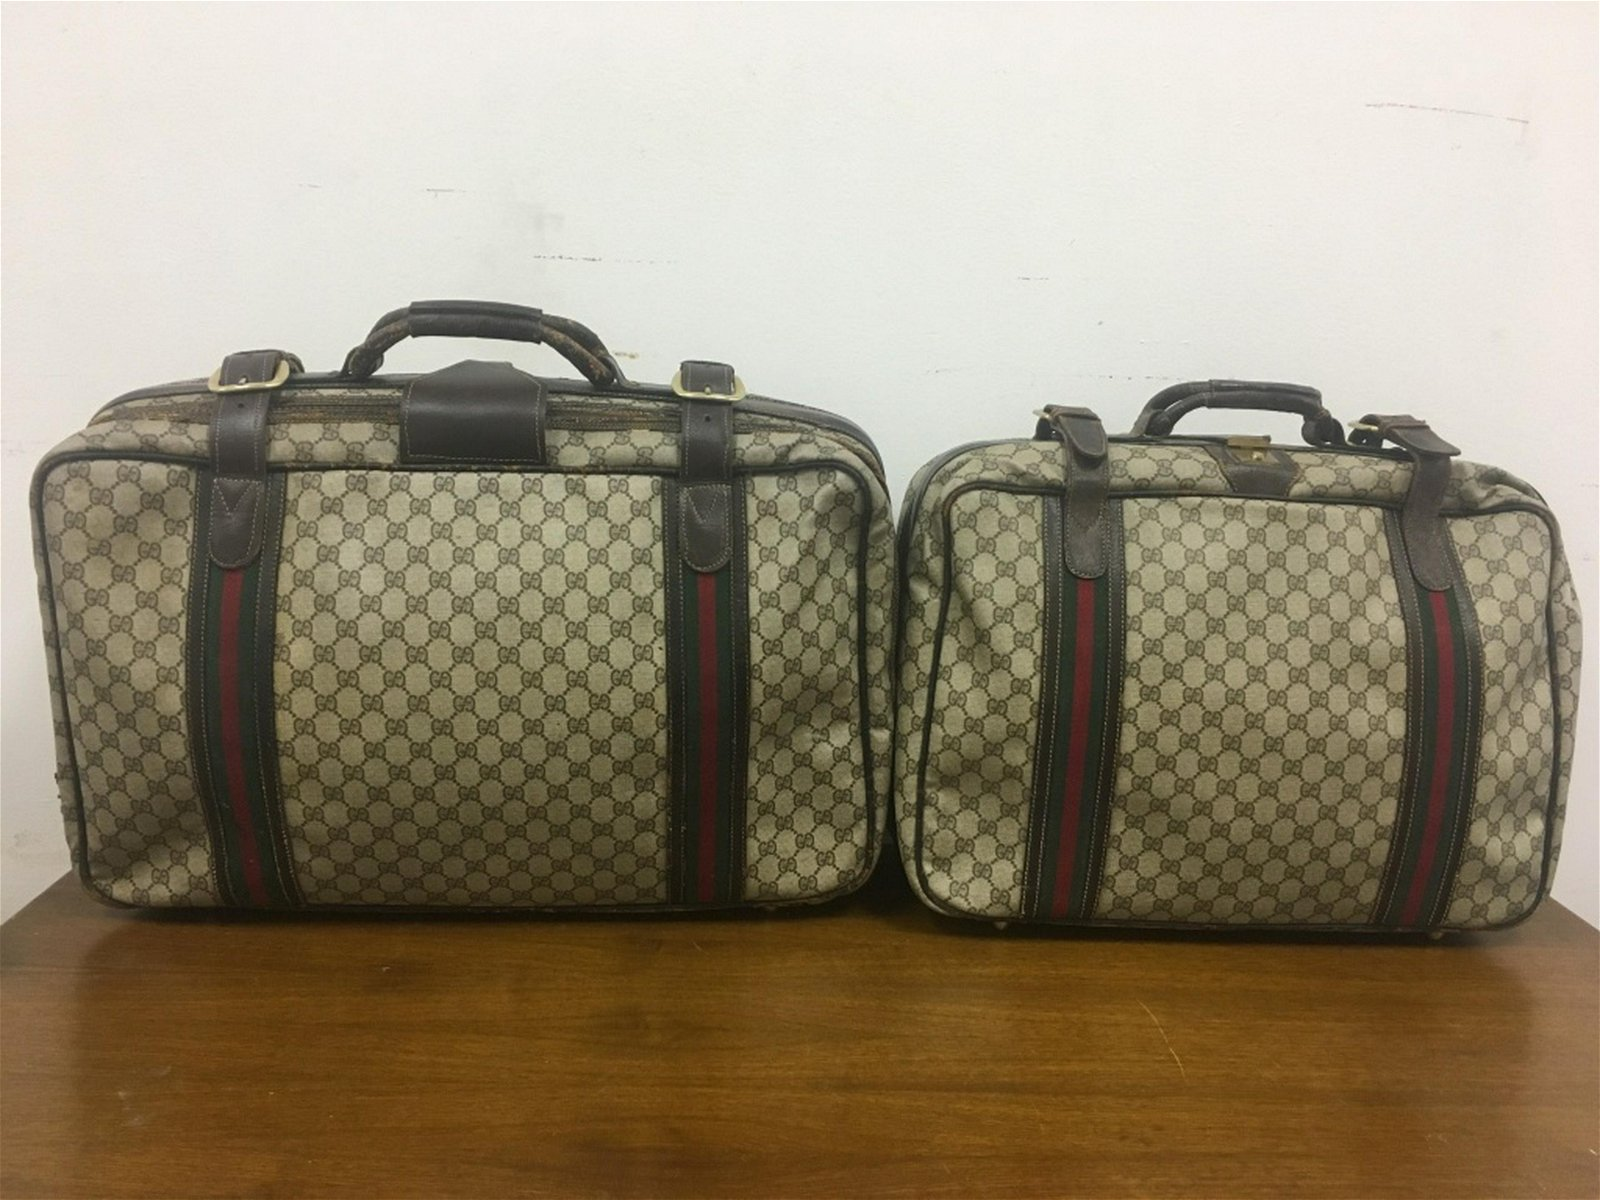 2 Vintage Gucci Luggage Bags